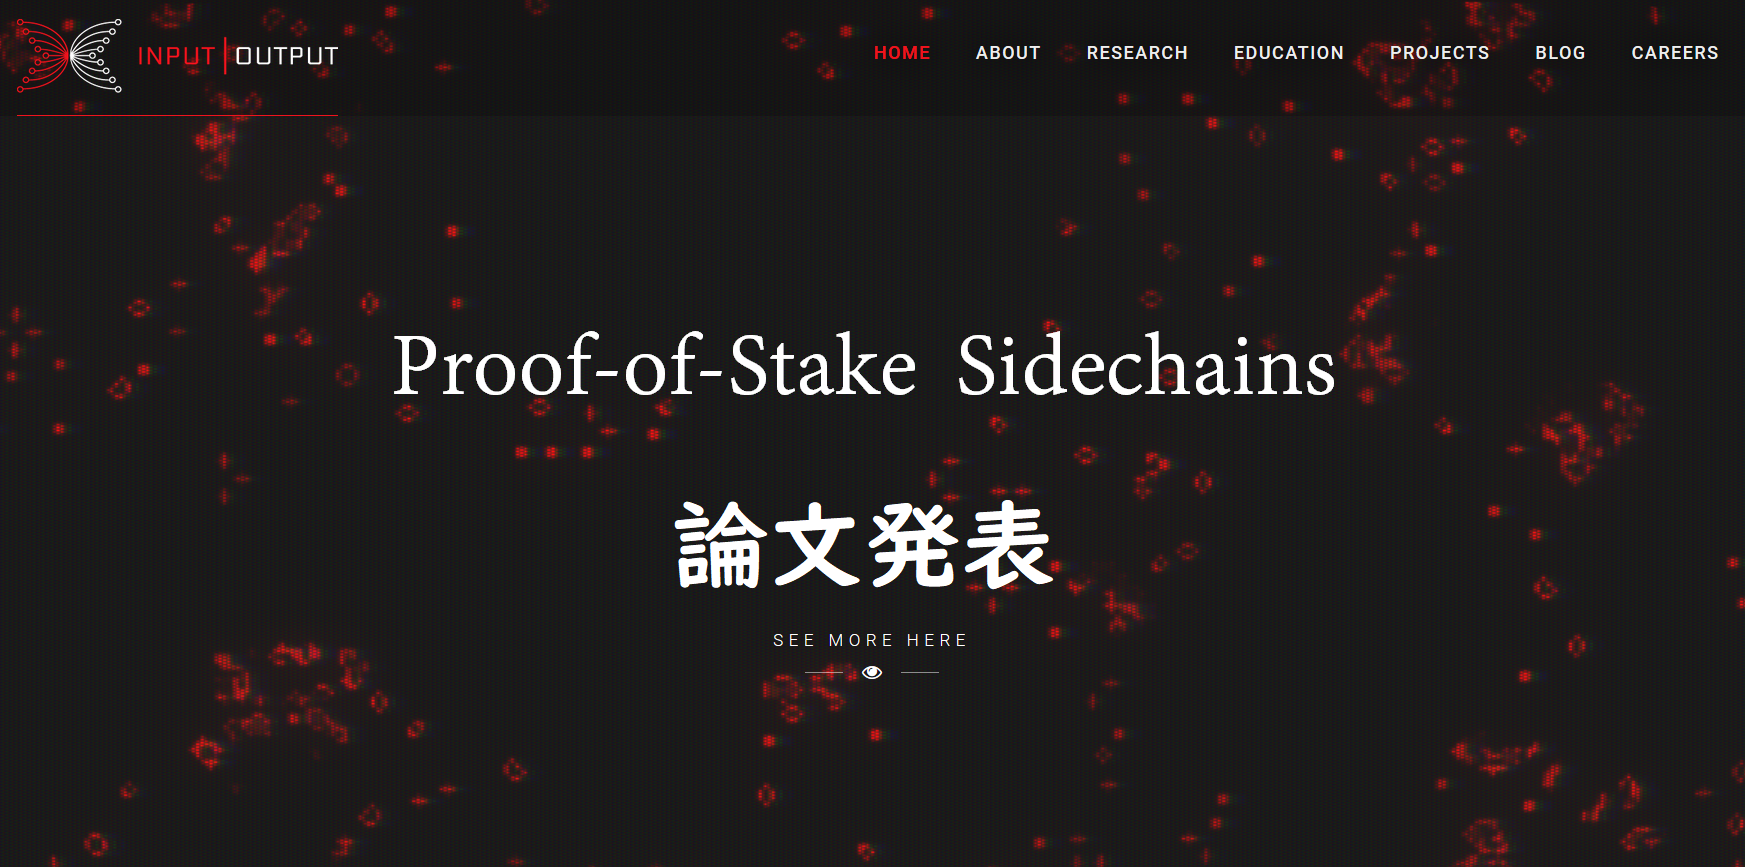 Proof-of-Stake Sidechains